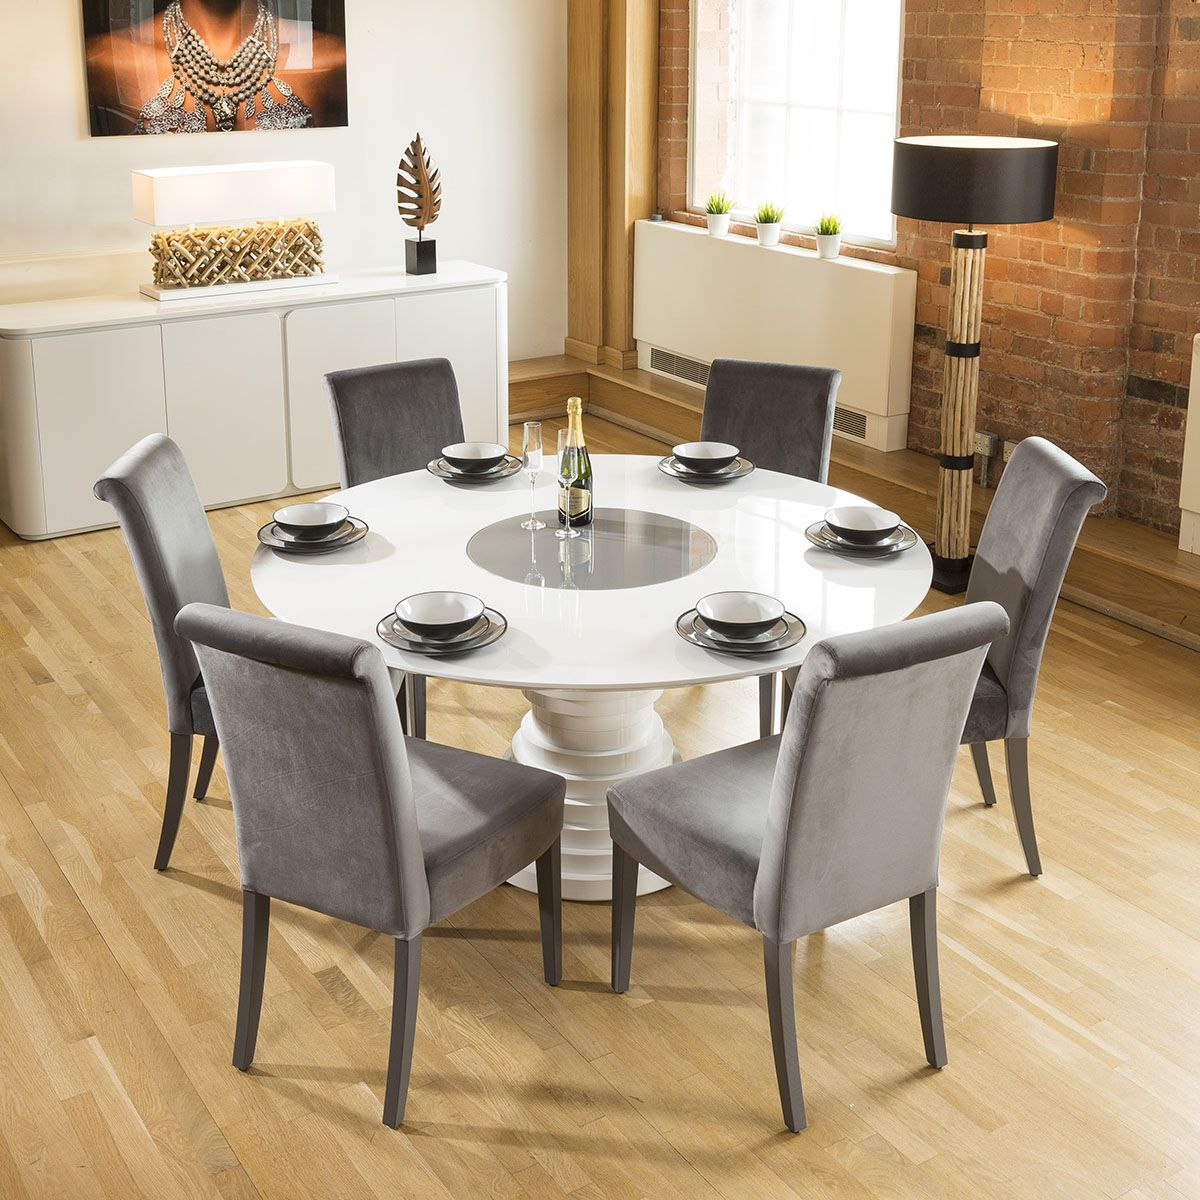 Huge Round White Gloss Dining Table Grey Lazy Susan 6 High Back